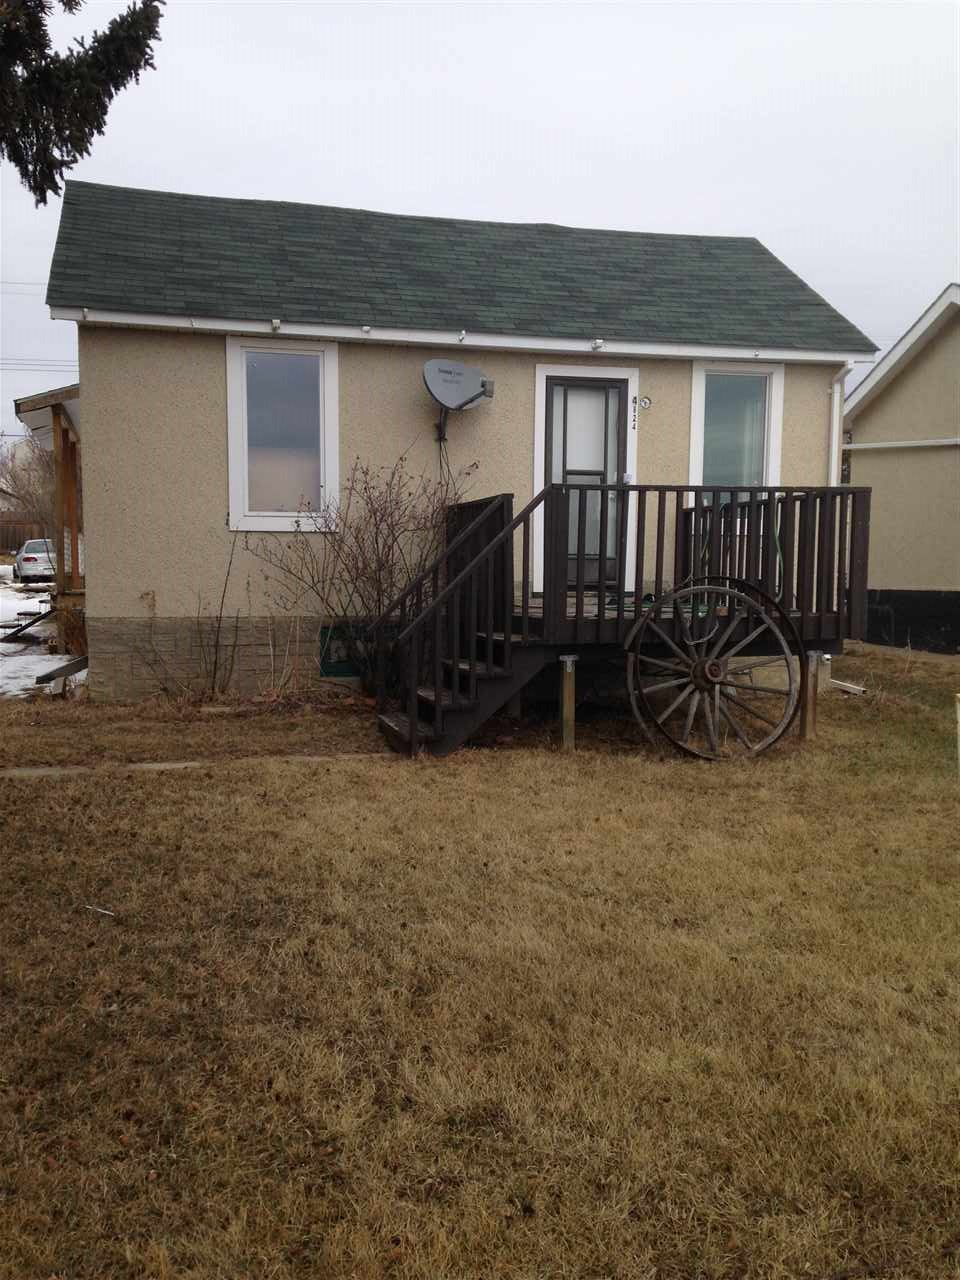 Cozy 1 bedroom home in the quiet Village of Holden. Upgraded Kitchen & bath, flooring, windows & doors. Needs some finishing and TLC.